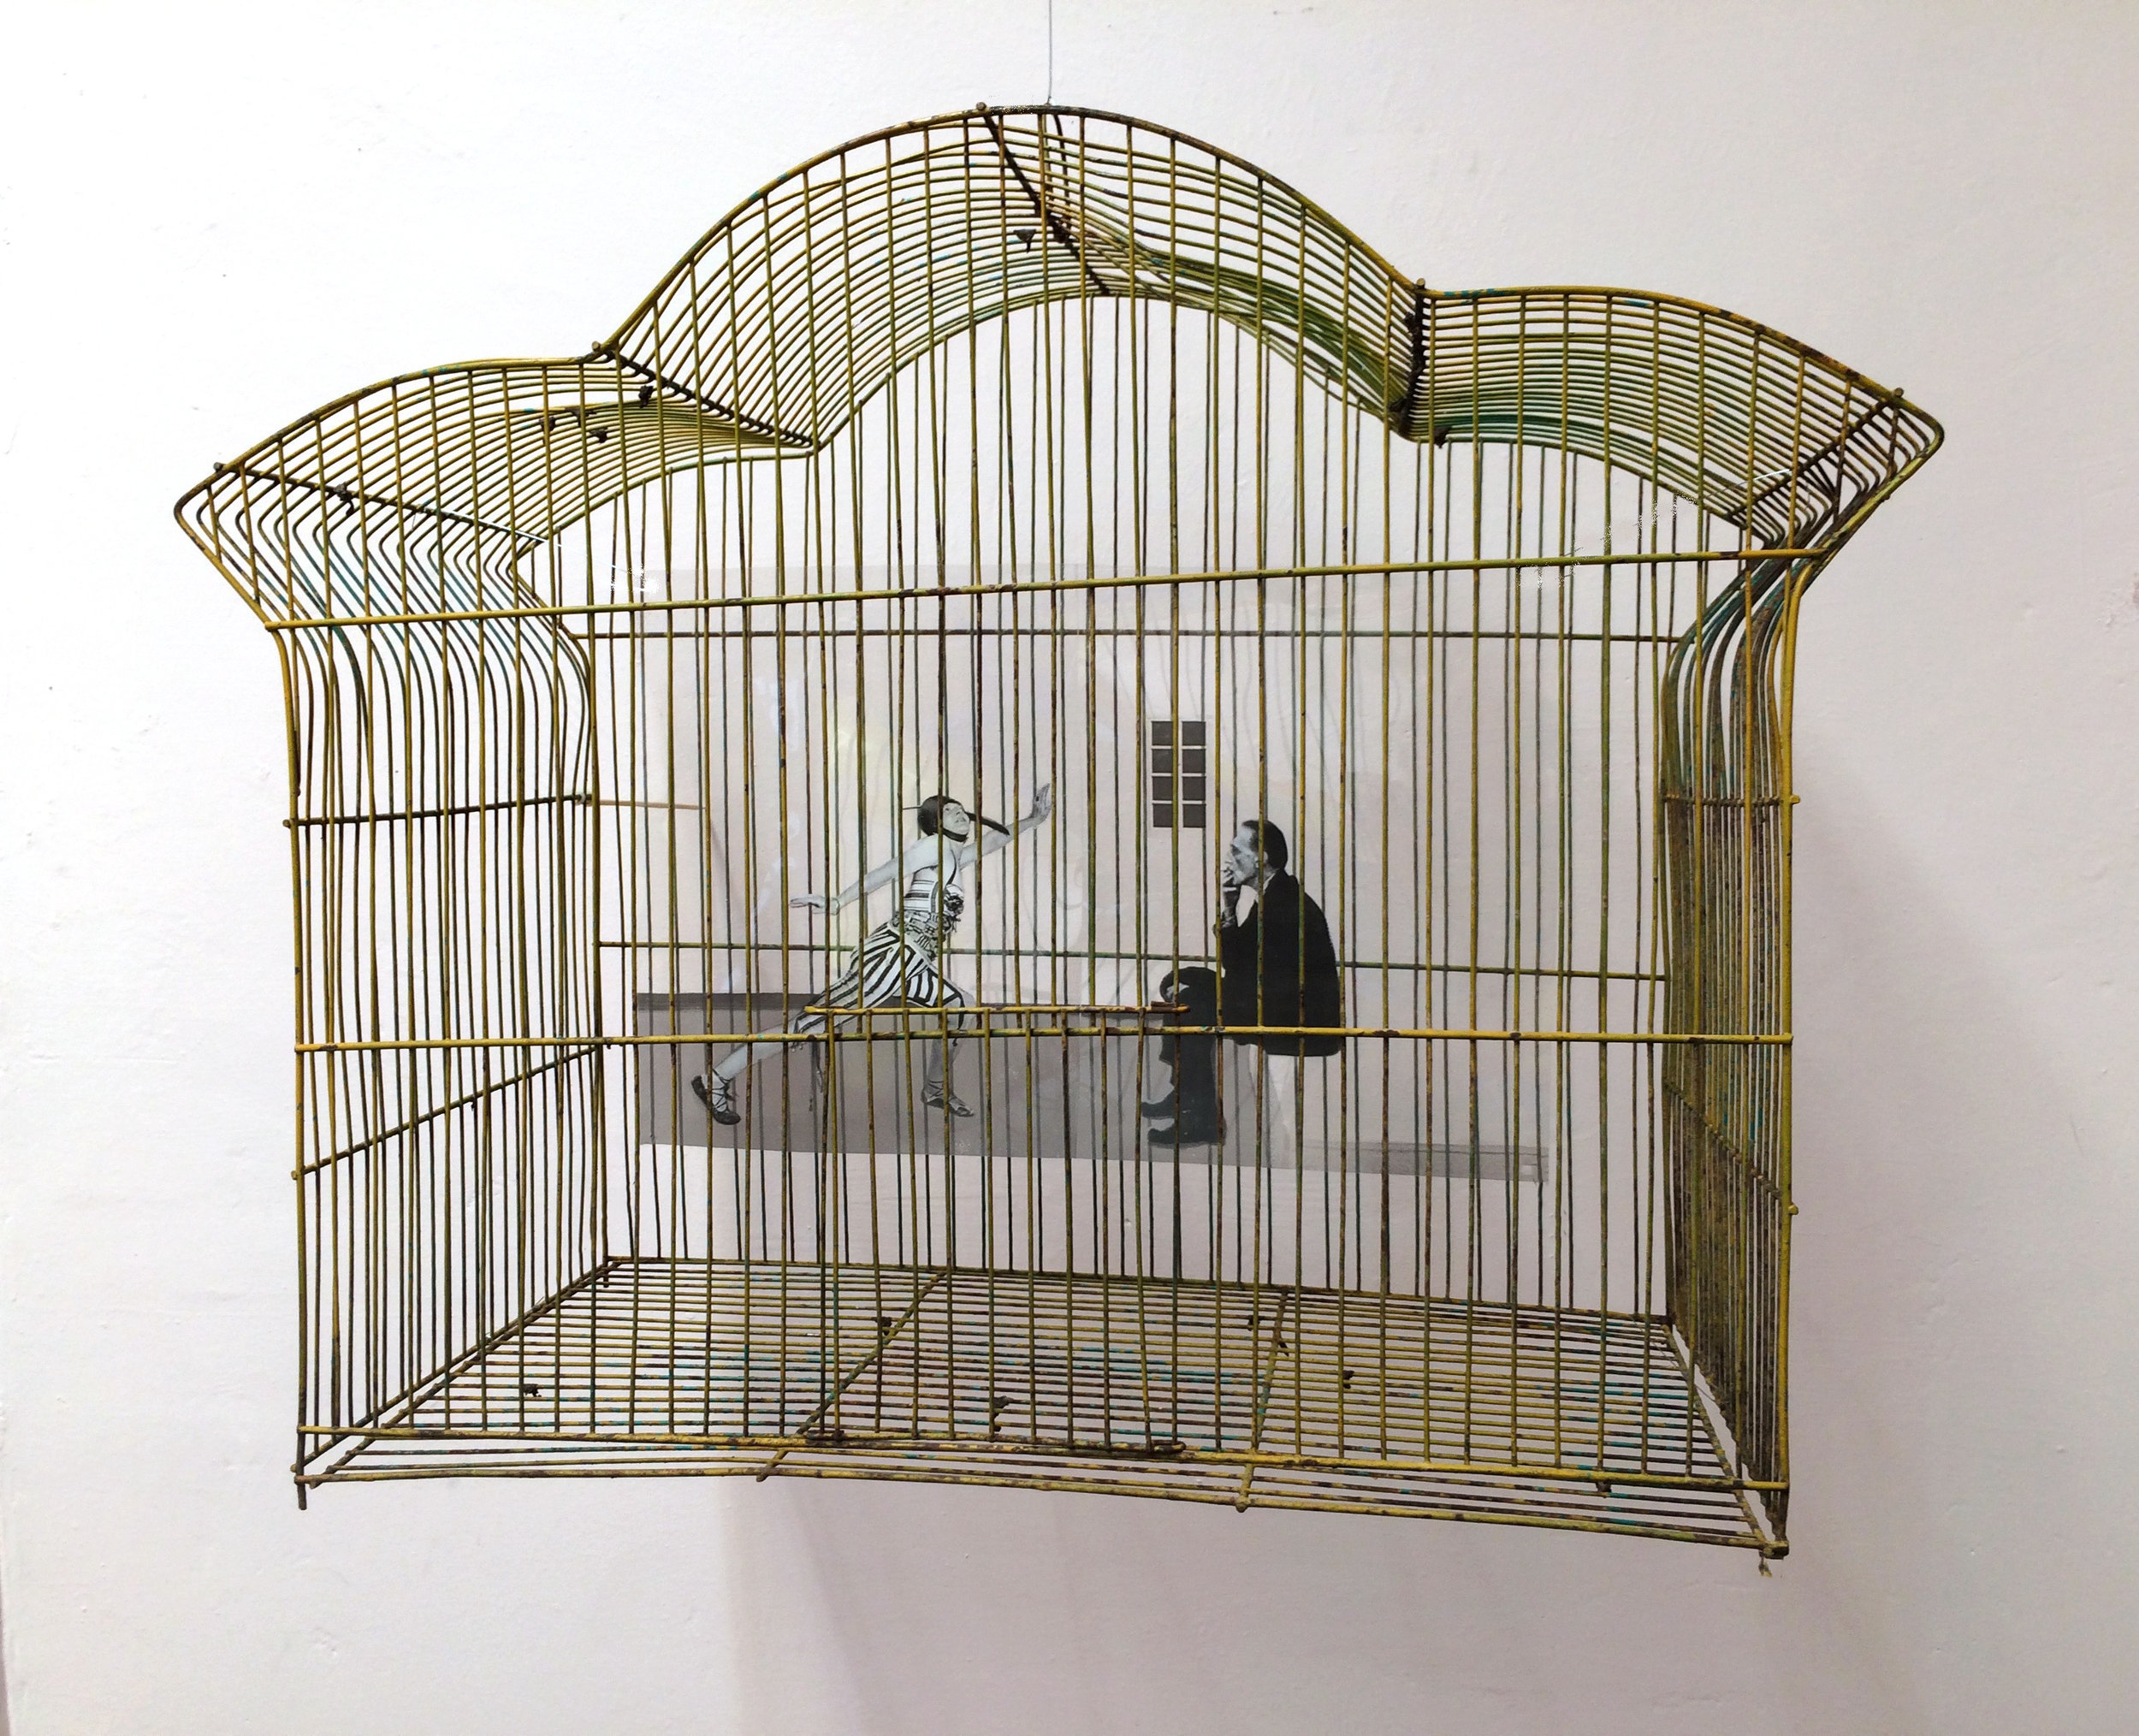 """ELSA & MARCEL (2016) Images of the Baroness, (Elsa Von Freytag Loringhoven) and Marcel Duchamp on transparency in bird cage, 12 x 14 x 12"""""""